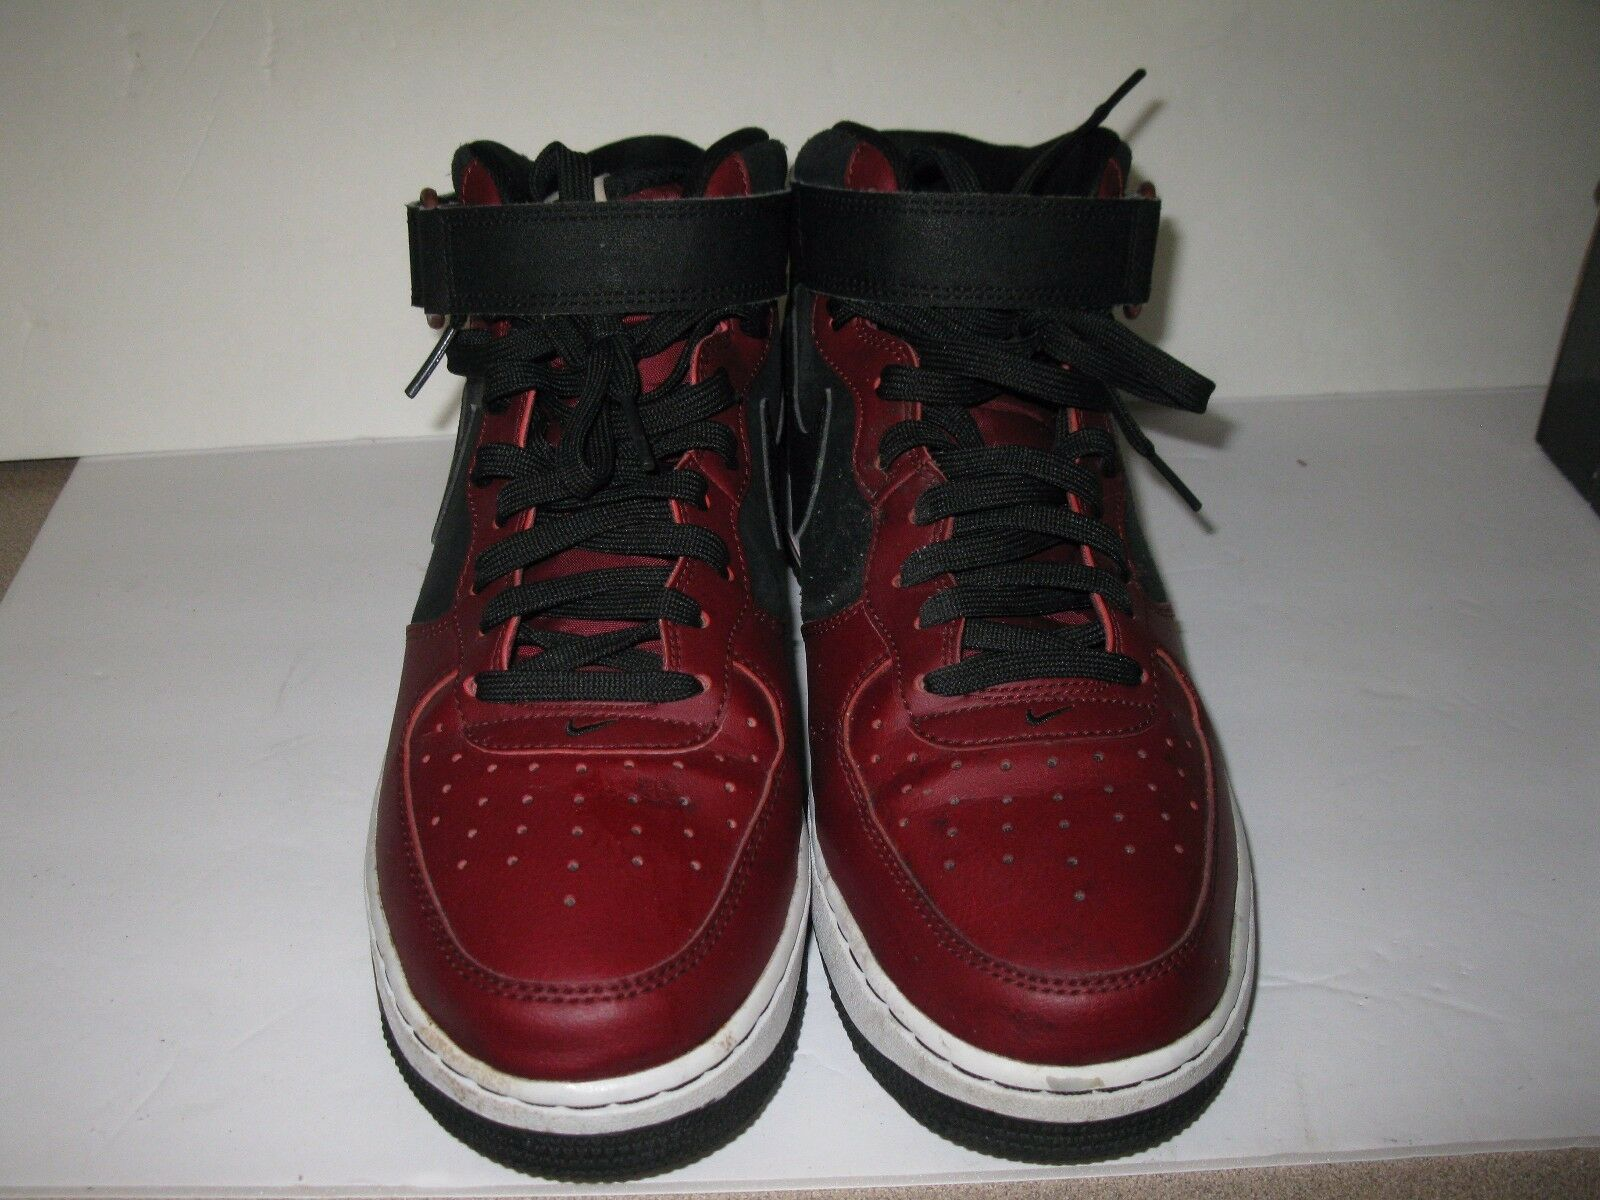 Nike Air Force 1 MID '07 Black Red White Men's Size 9 (315123 032)